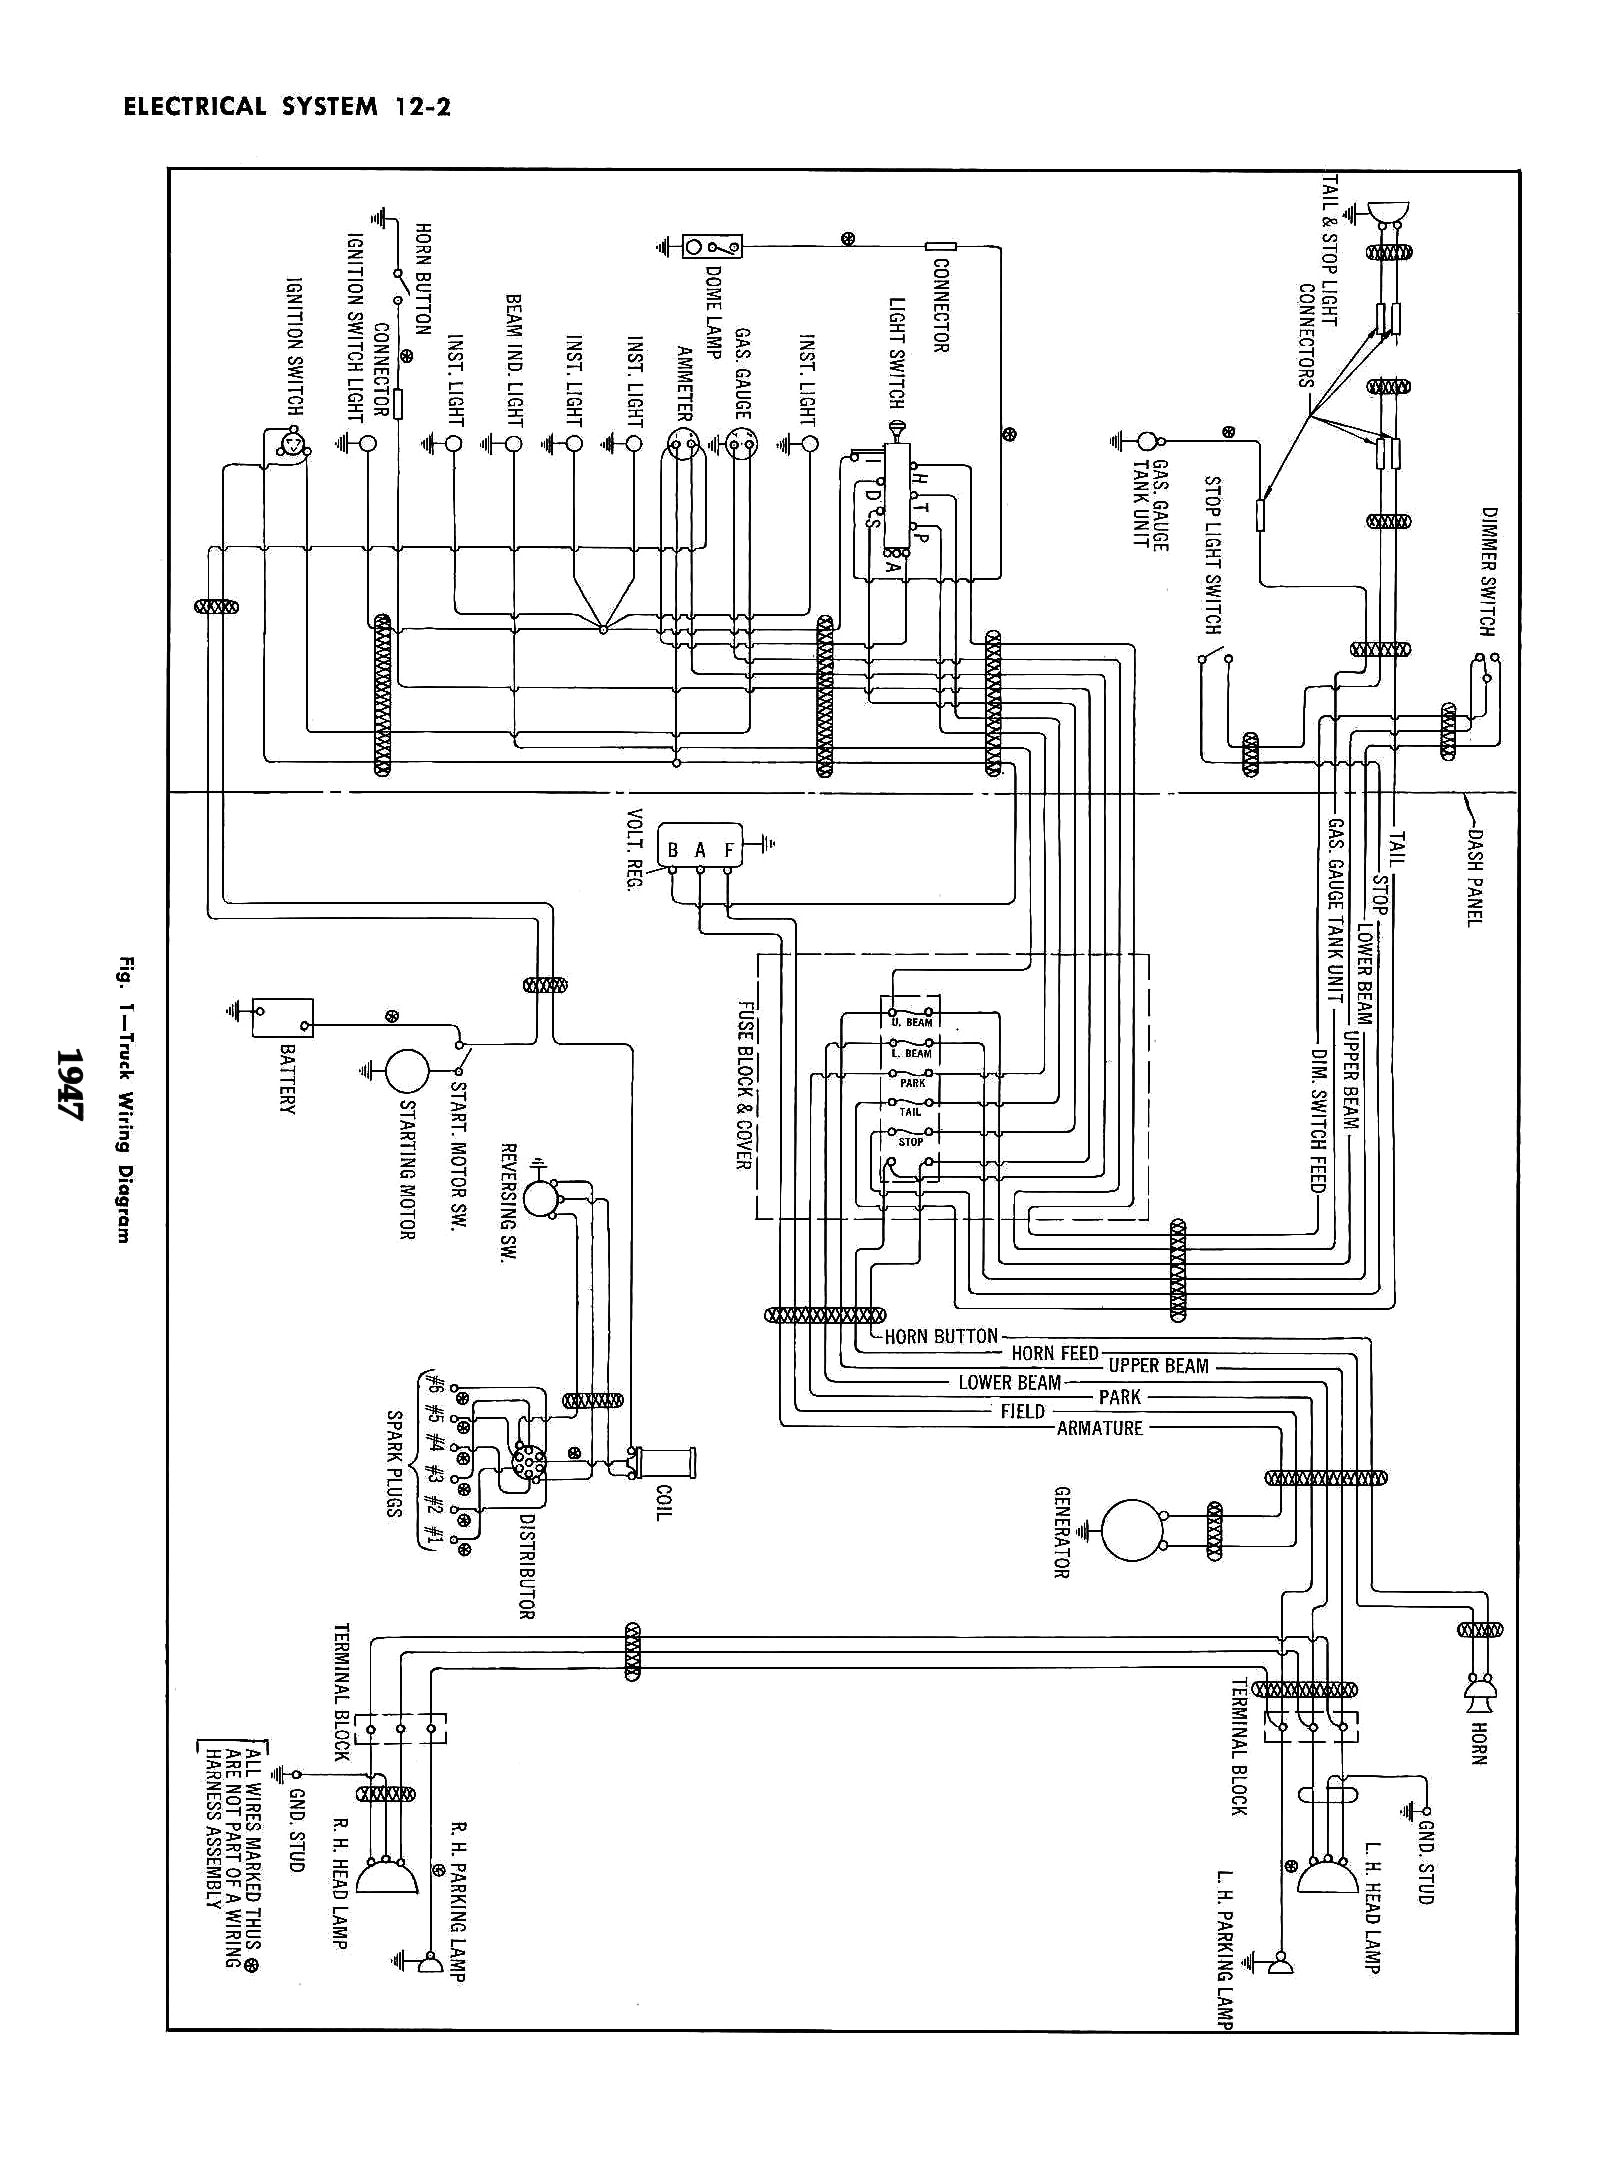 Berhinger Pm2000 Wiring Diagram